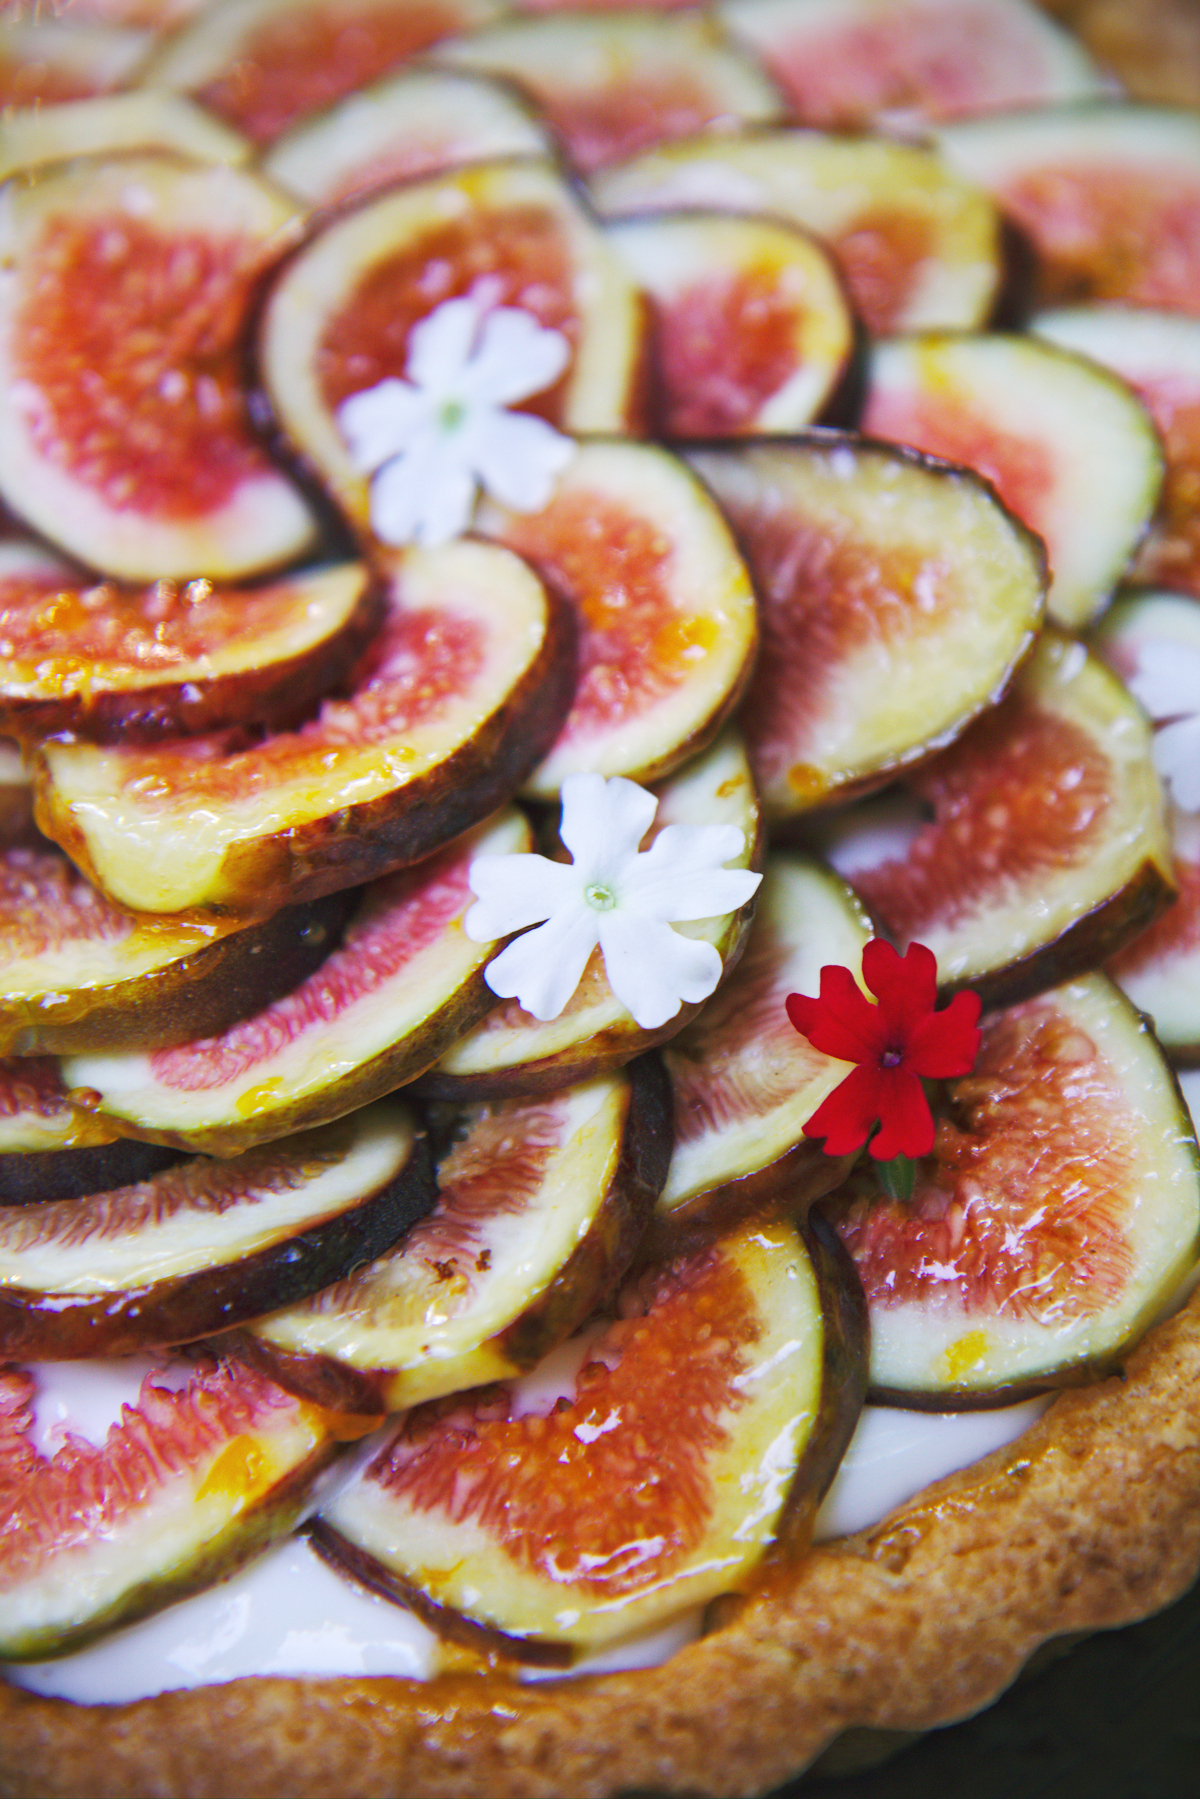 Fig, Rosemary, and Lemon Tart | La Pêche Fraîche